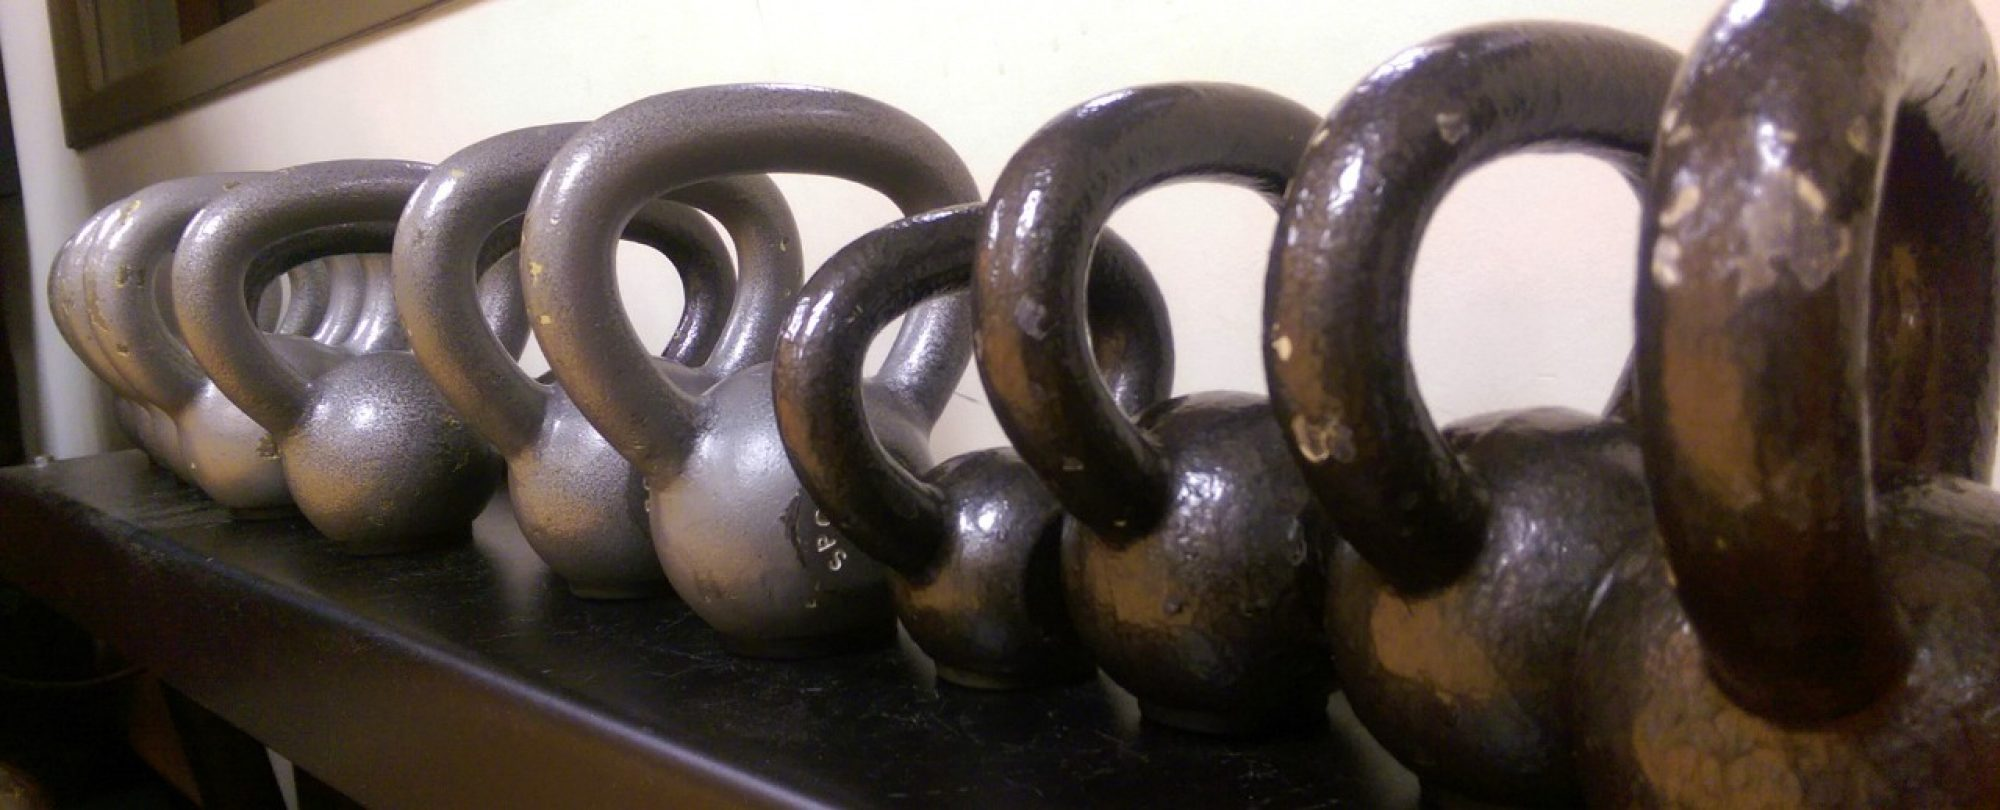 photo of dumb bells in gym rack